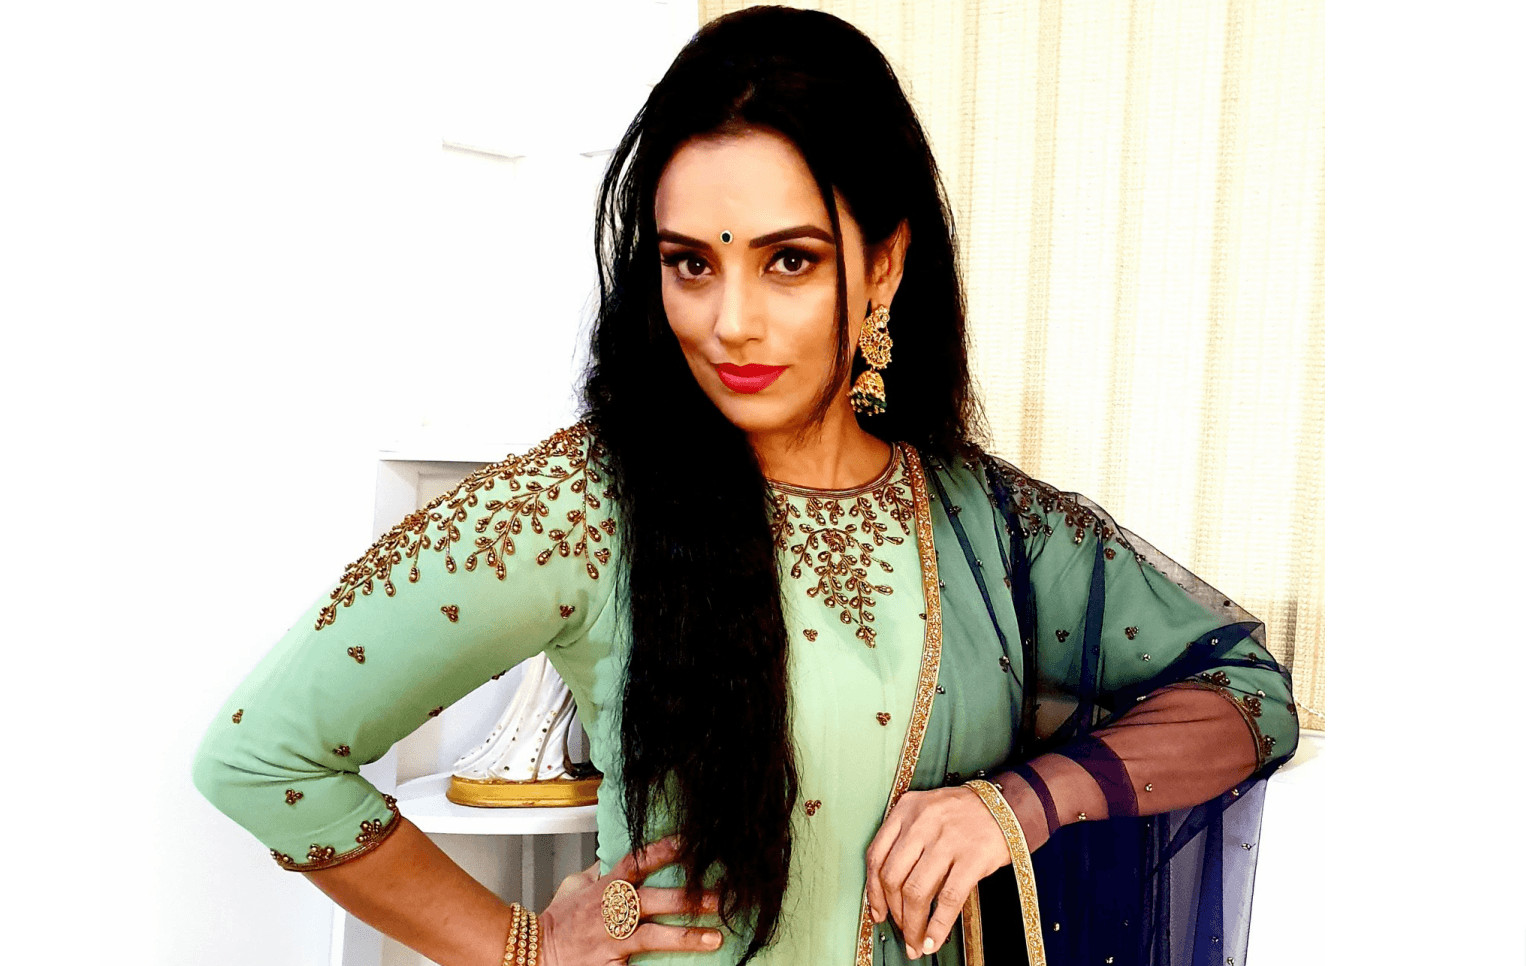 Women are nobody's victims – Shweta Menon